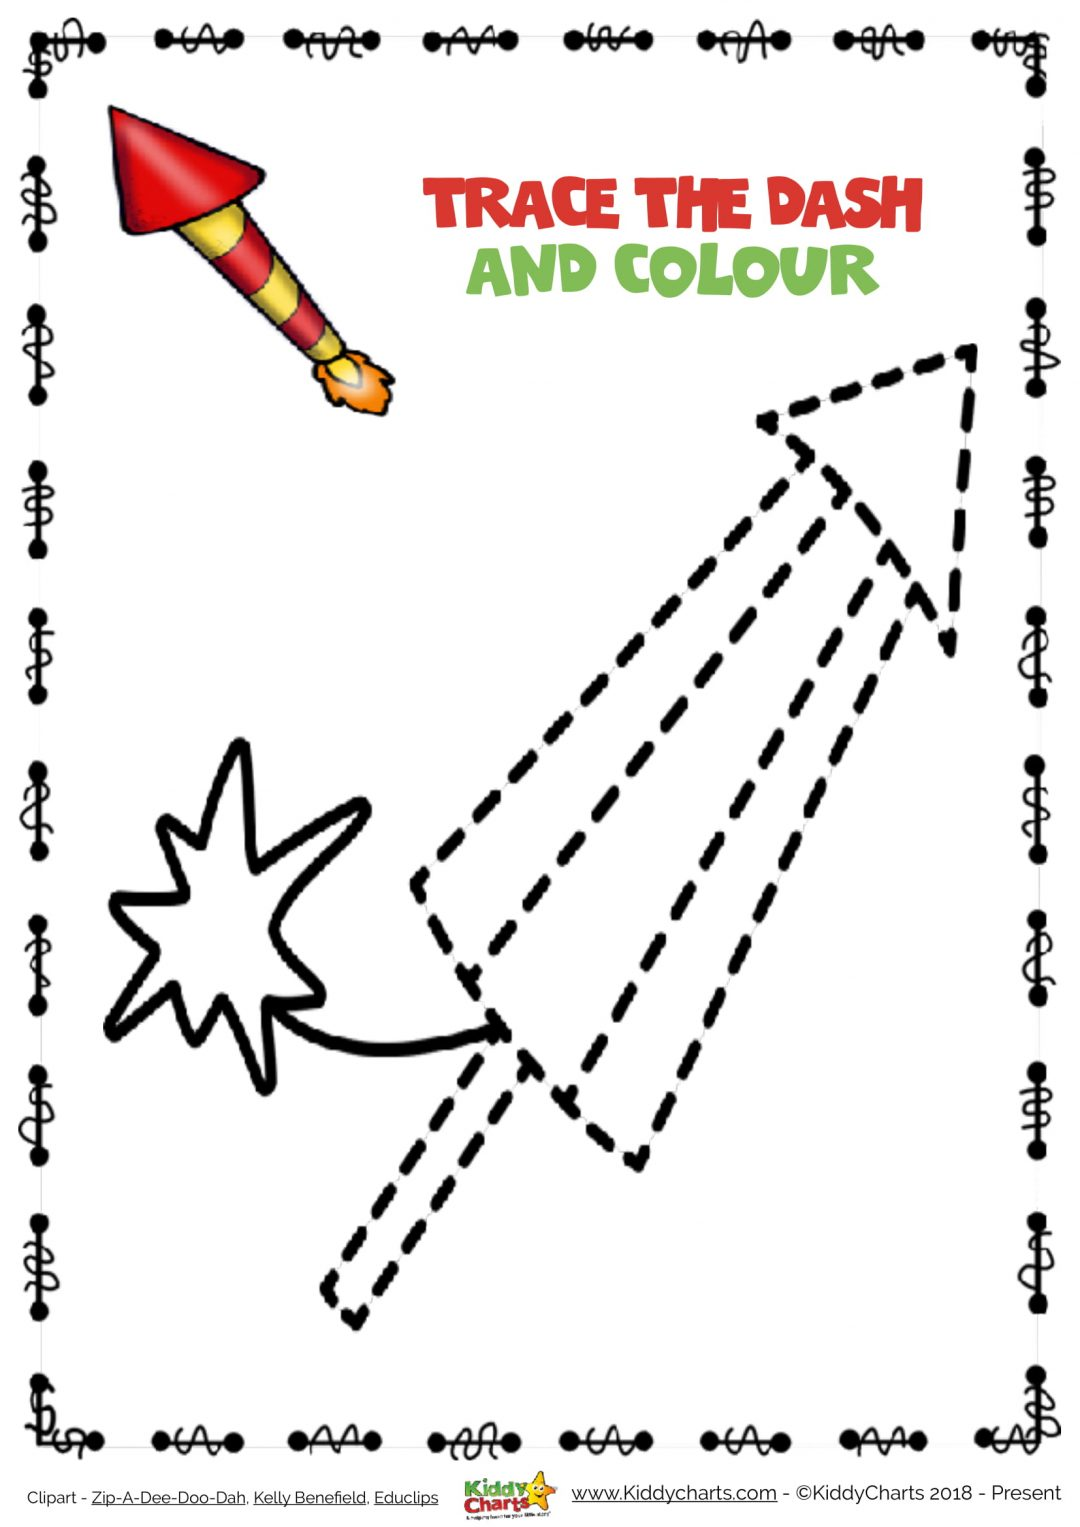 Fun Free Firework Printables For The Fourth Of July And Bonfire Night